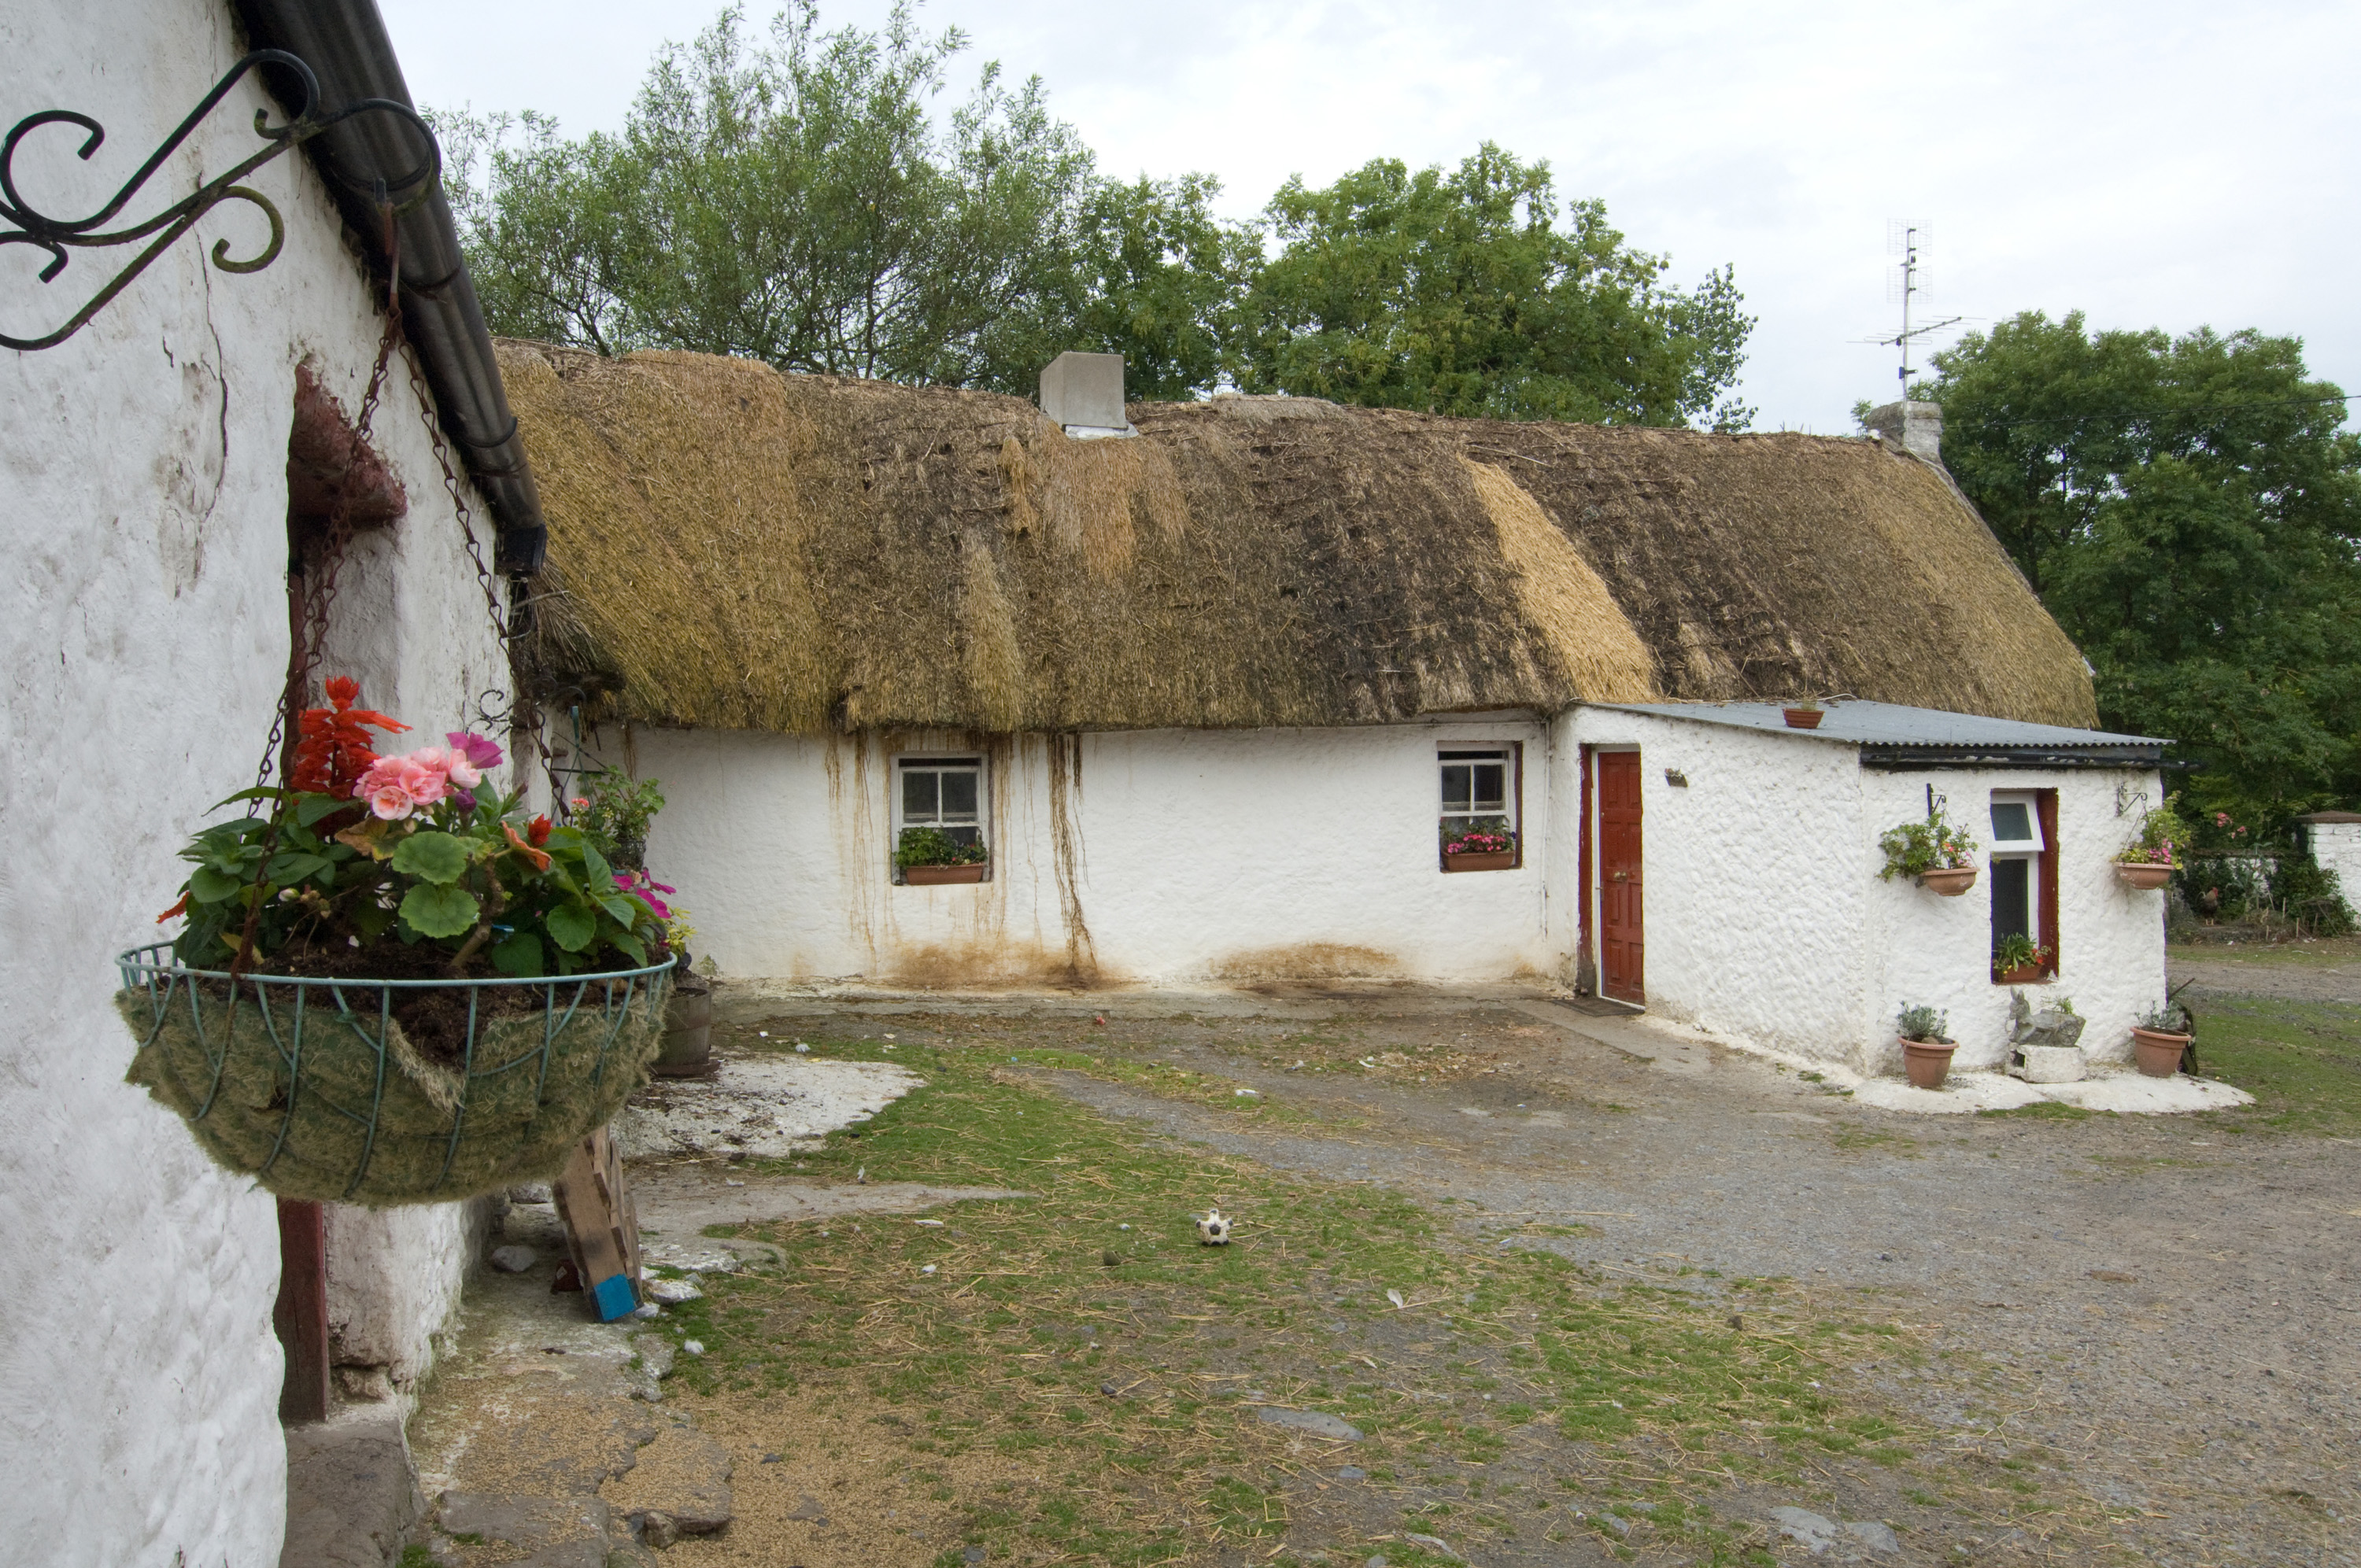 Thatched house in traditional farmyard, the Heath, Laois (Photo James Fraher)